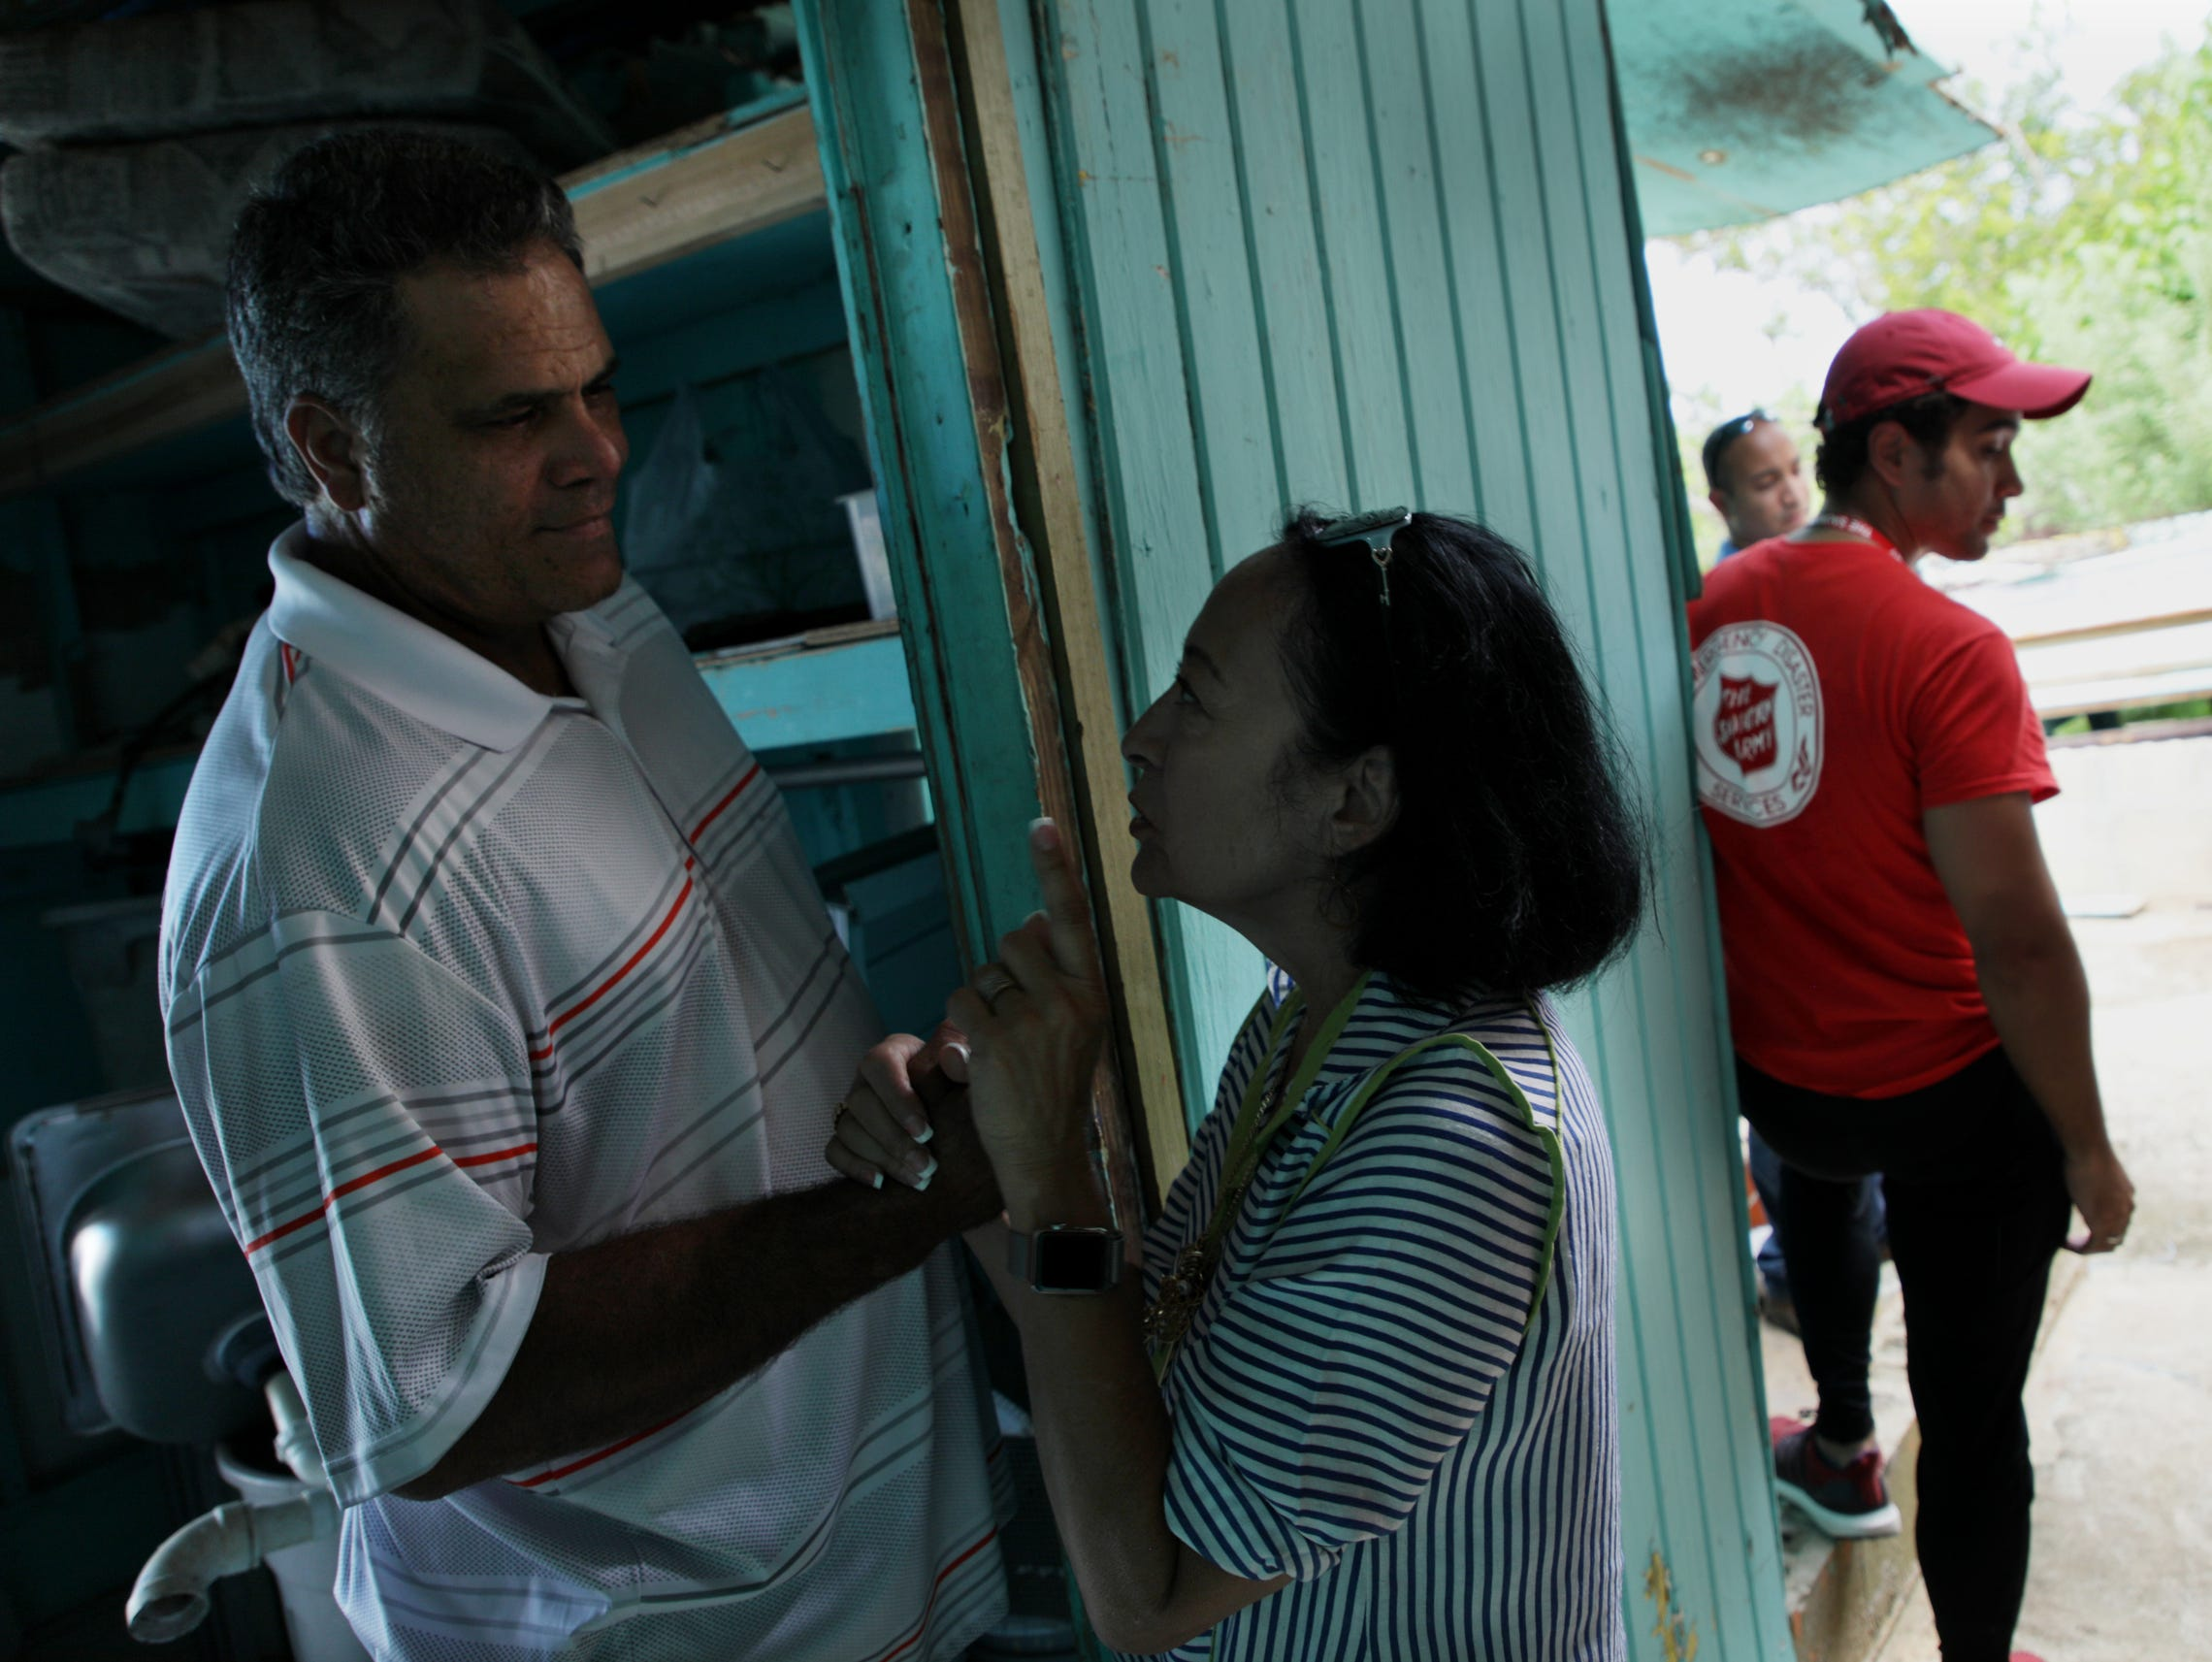 Eleobadis Delgado, left says good bye to Gloria Rodriguez after a visit by the Ford Fund and the Salvation Army at his home in Maunabo, Puerto Rico.